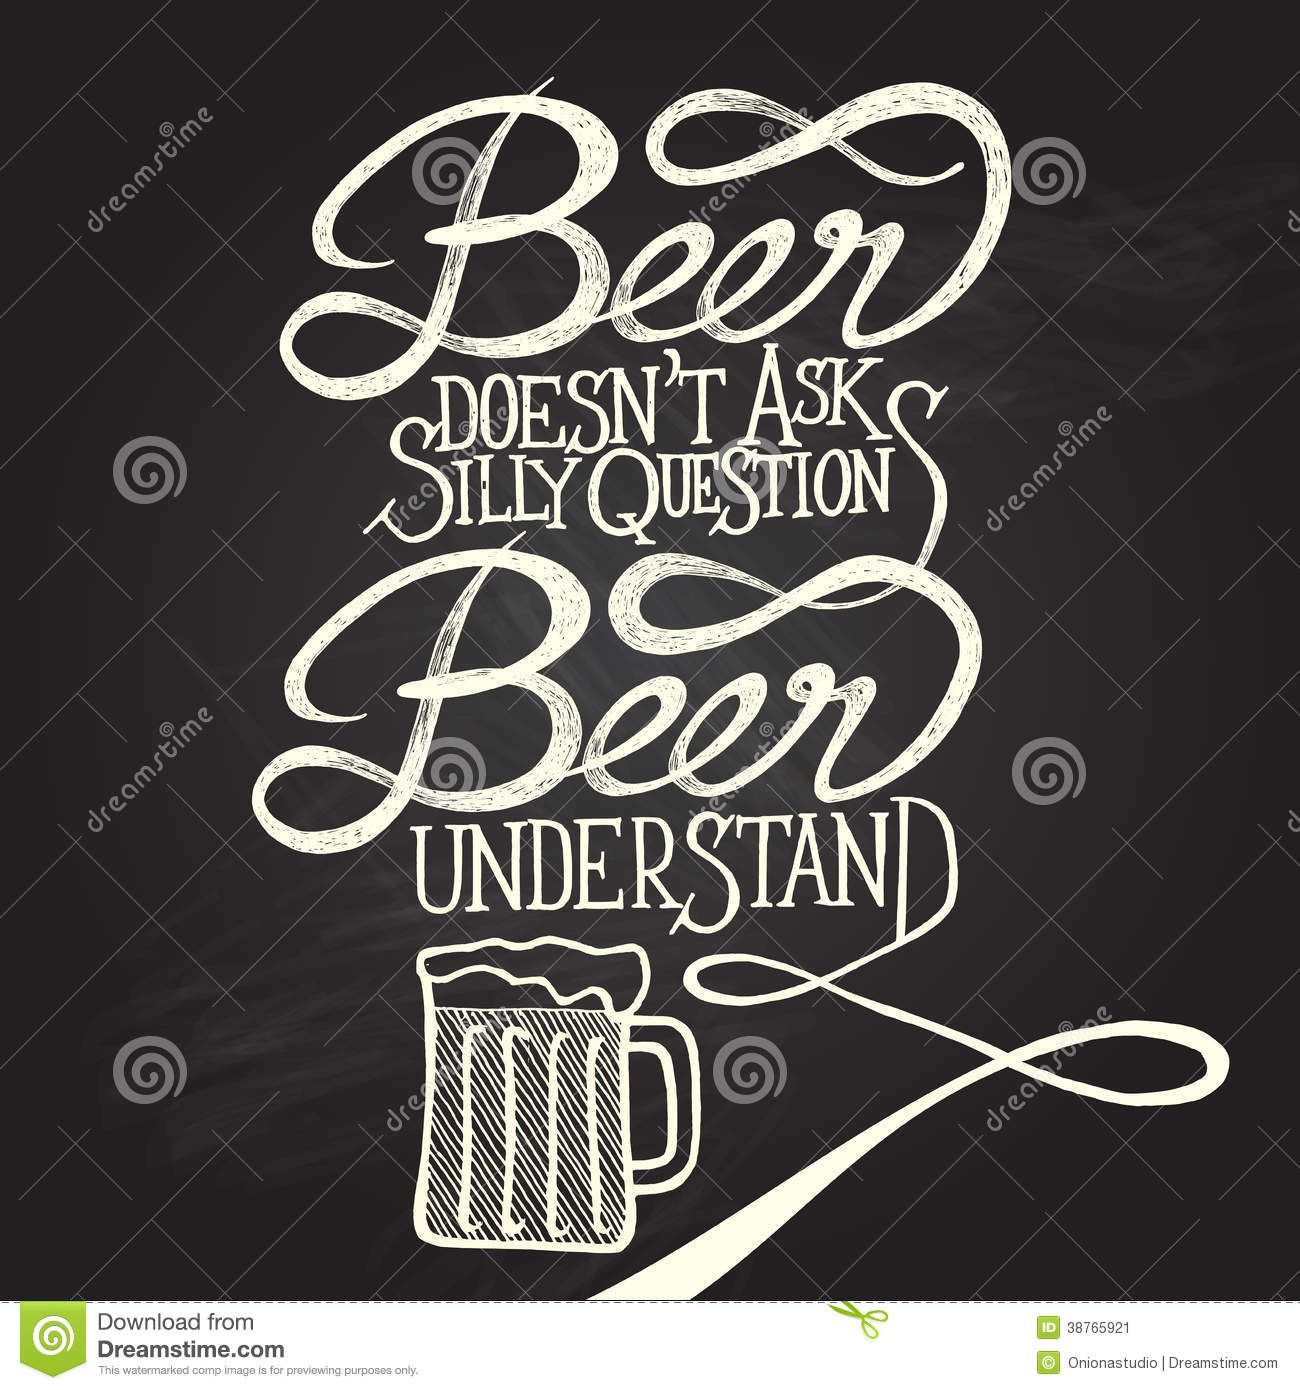 Beer Doesn't Ask Silly Questions. Beer Understands